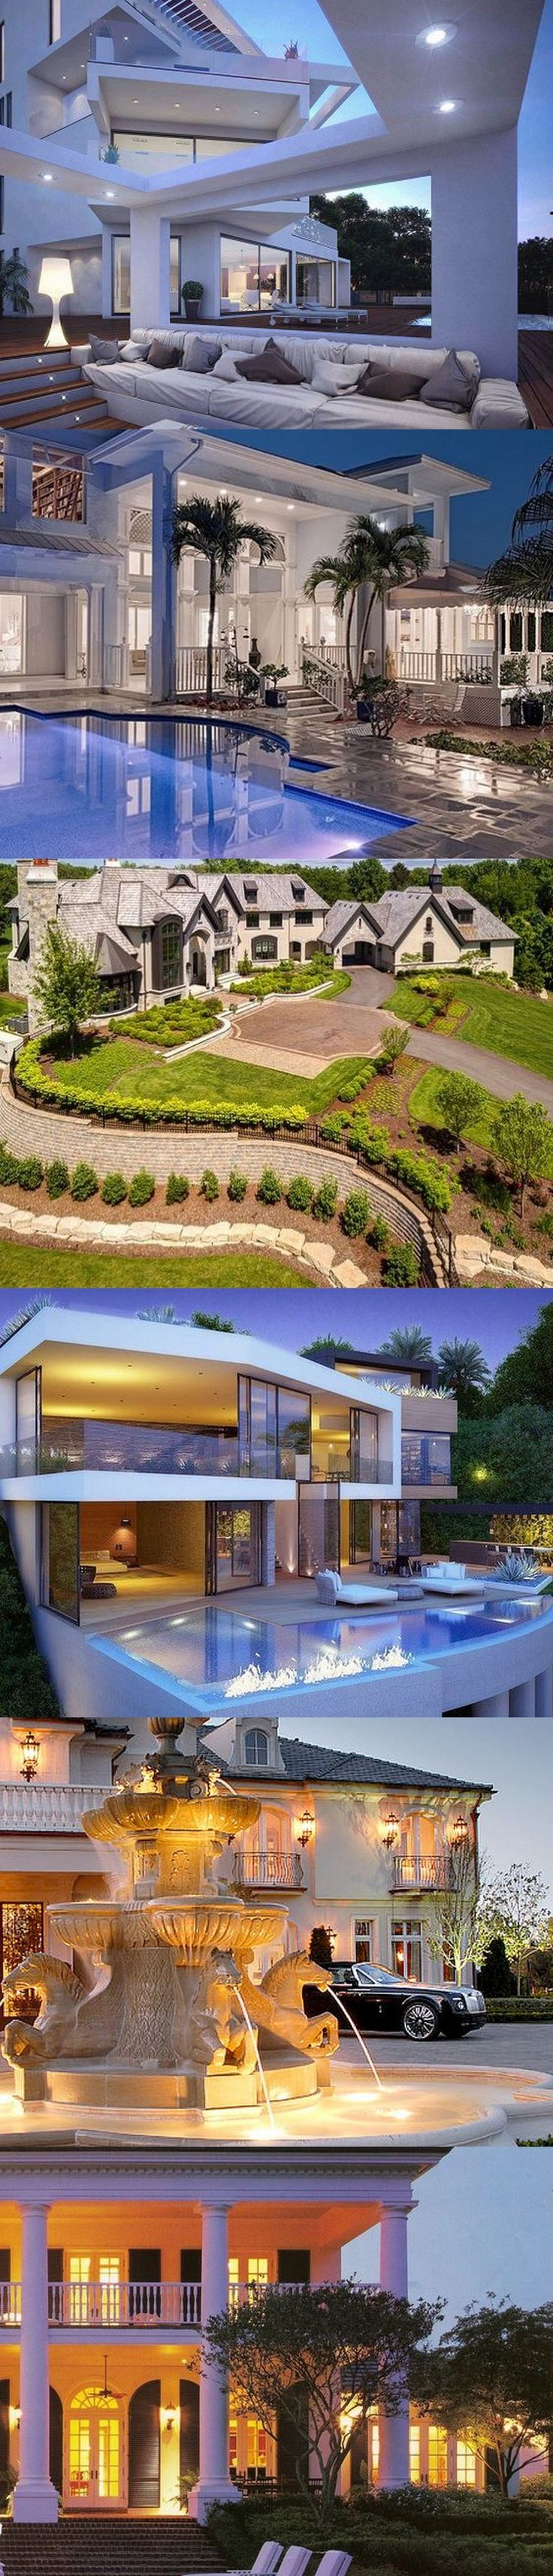 25 best ideas about mansion houses on pinterest